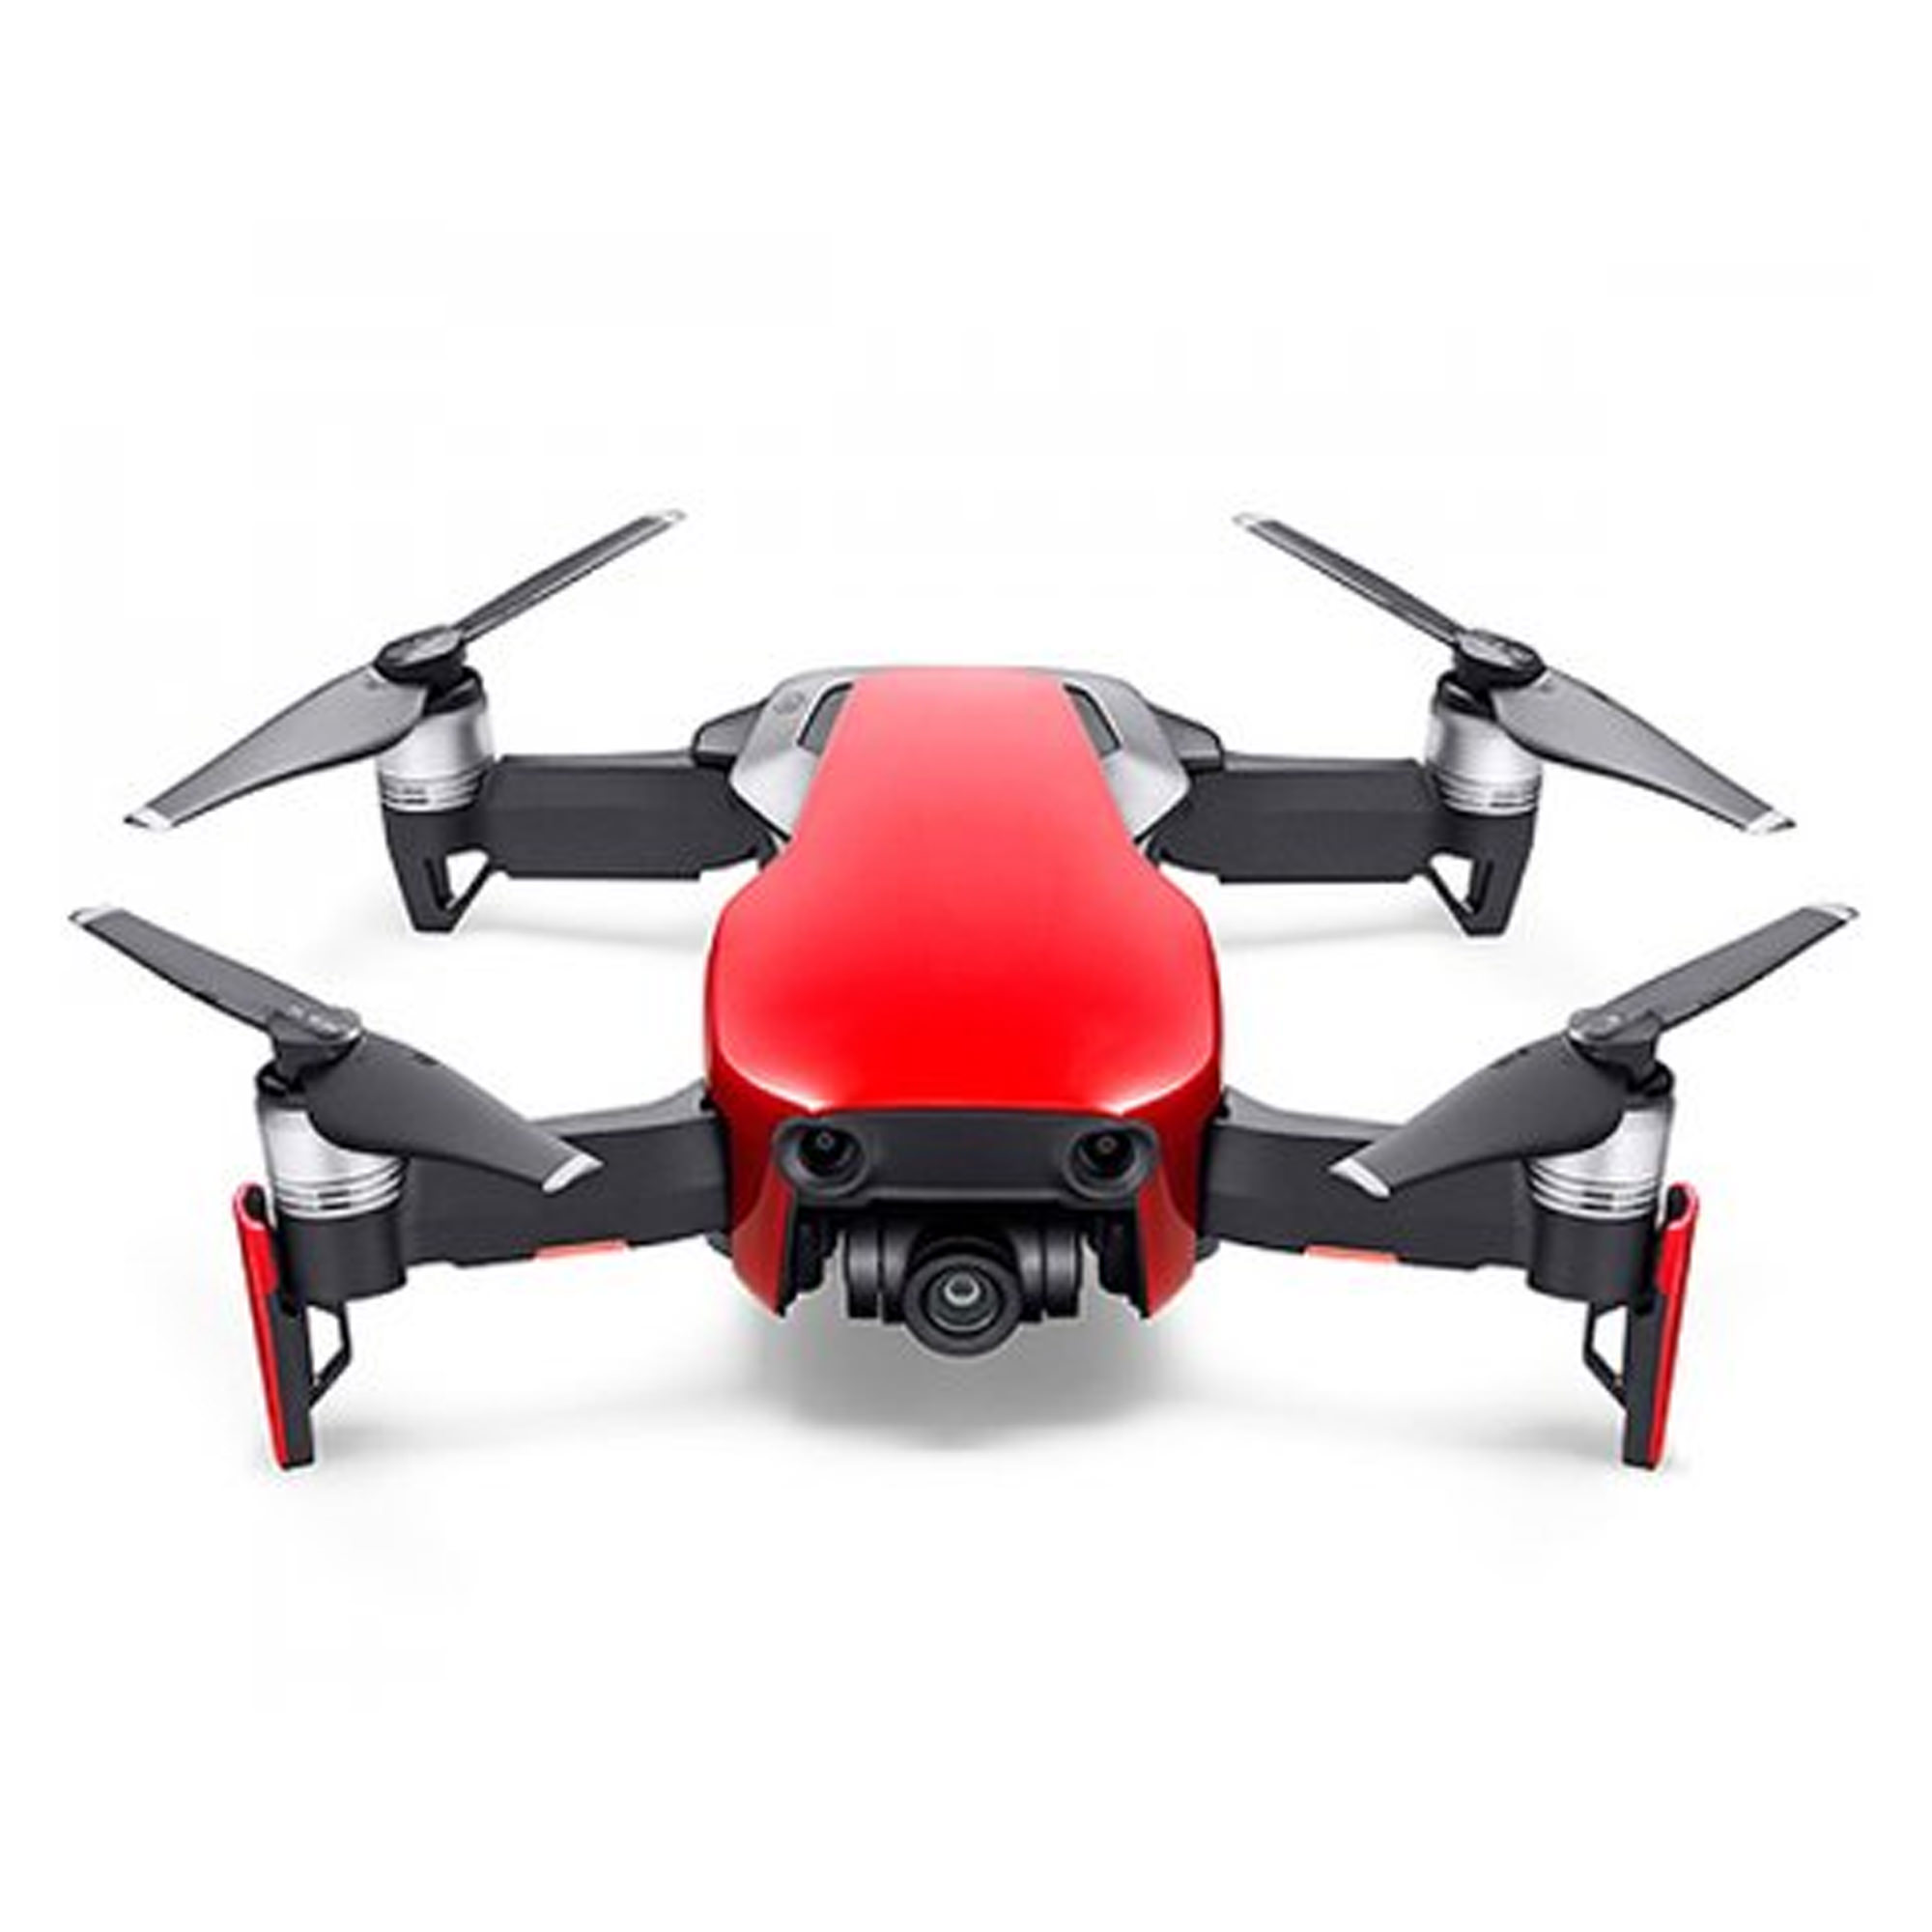 Drones With Hd Cameras Remote Controls And Led Lights Walmartcom